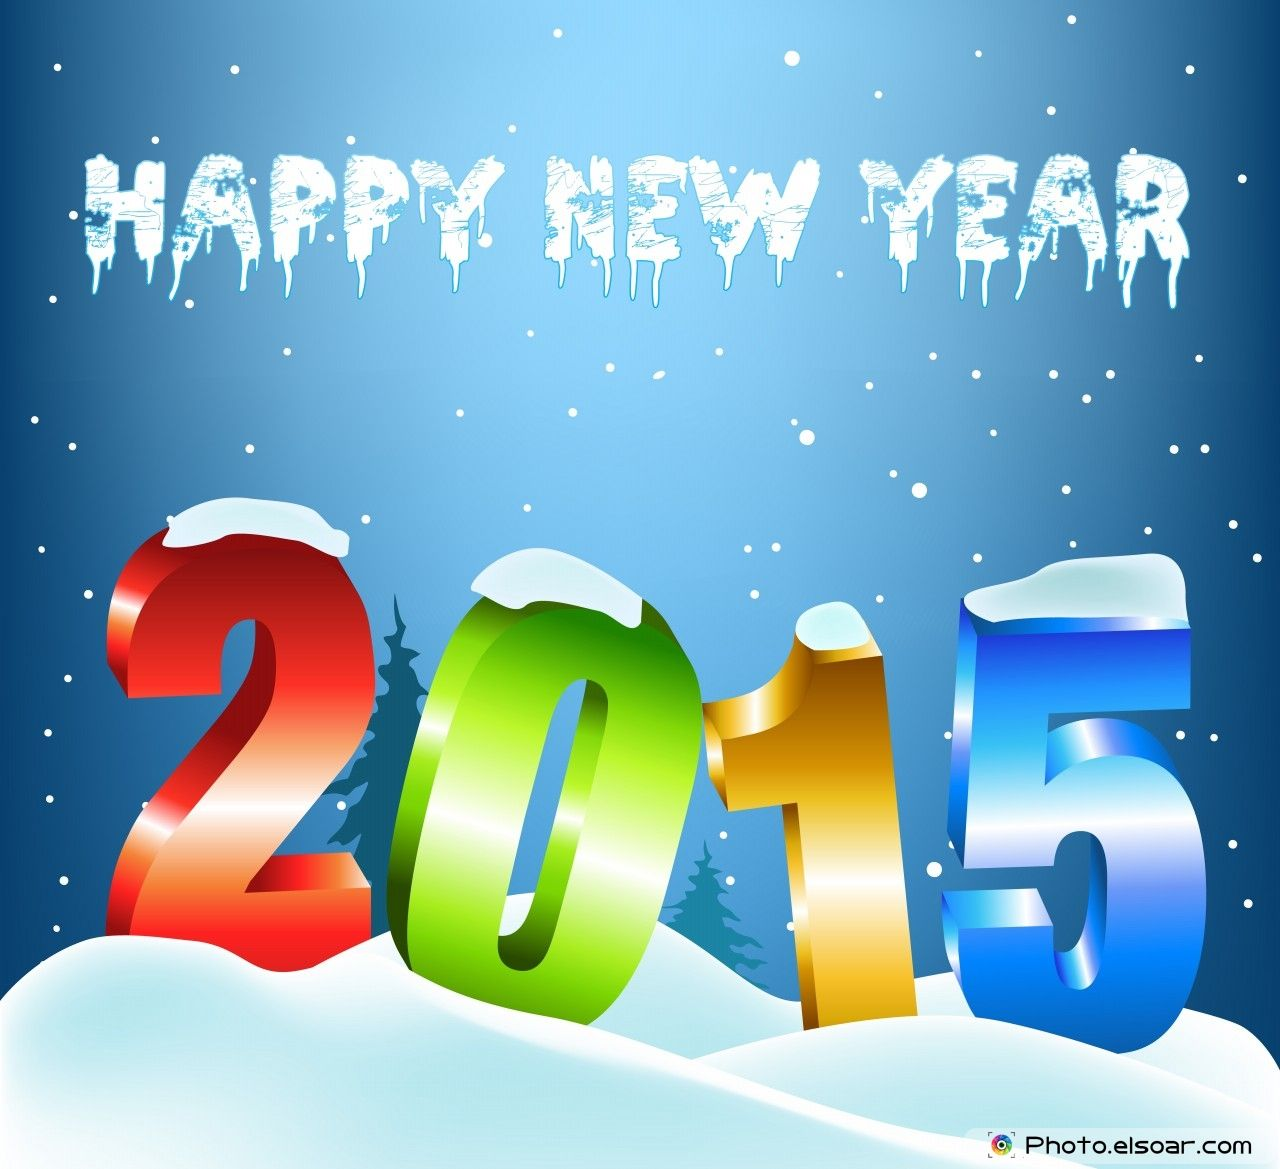 Happynewyear To All Of My Wonderful Friends And Fans All Over The